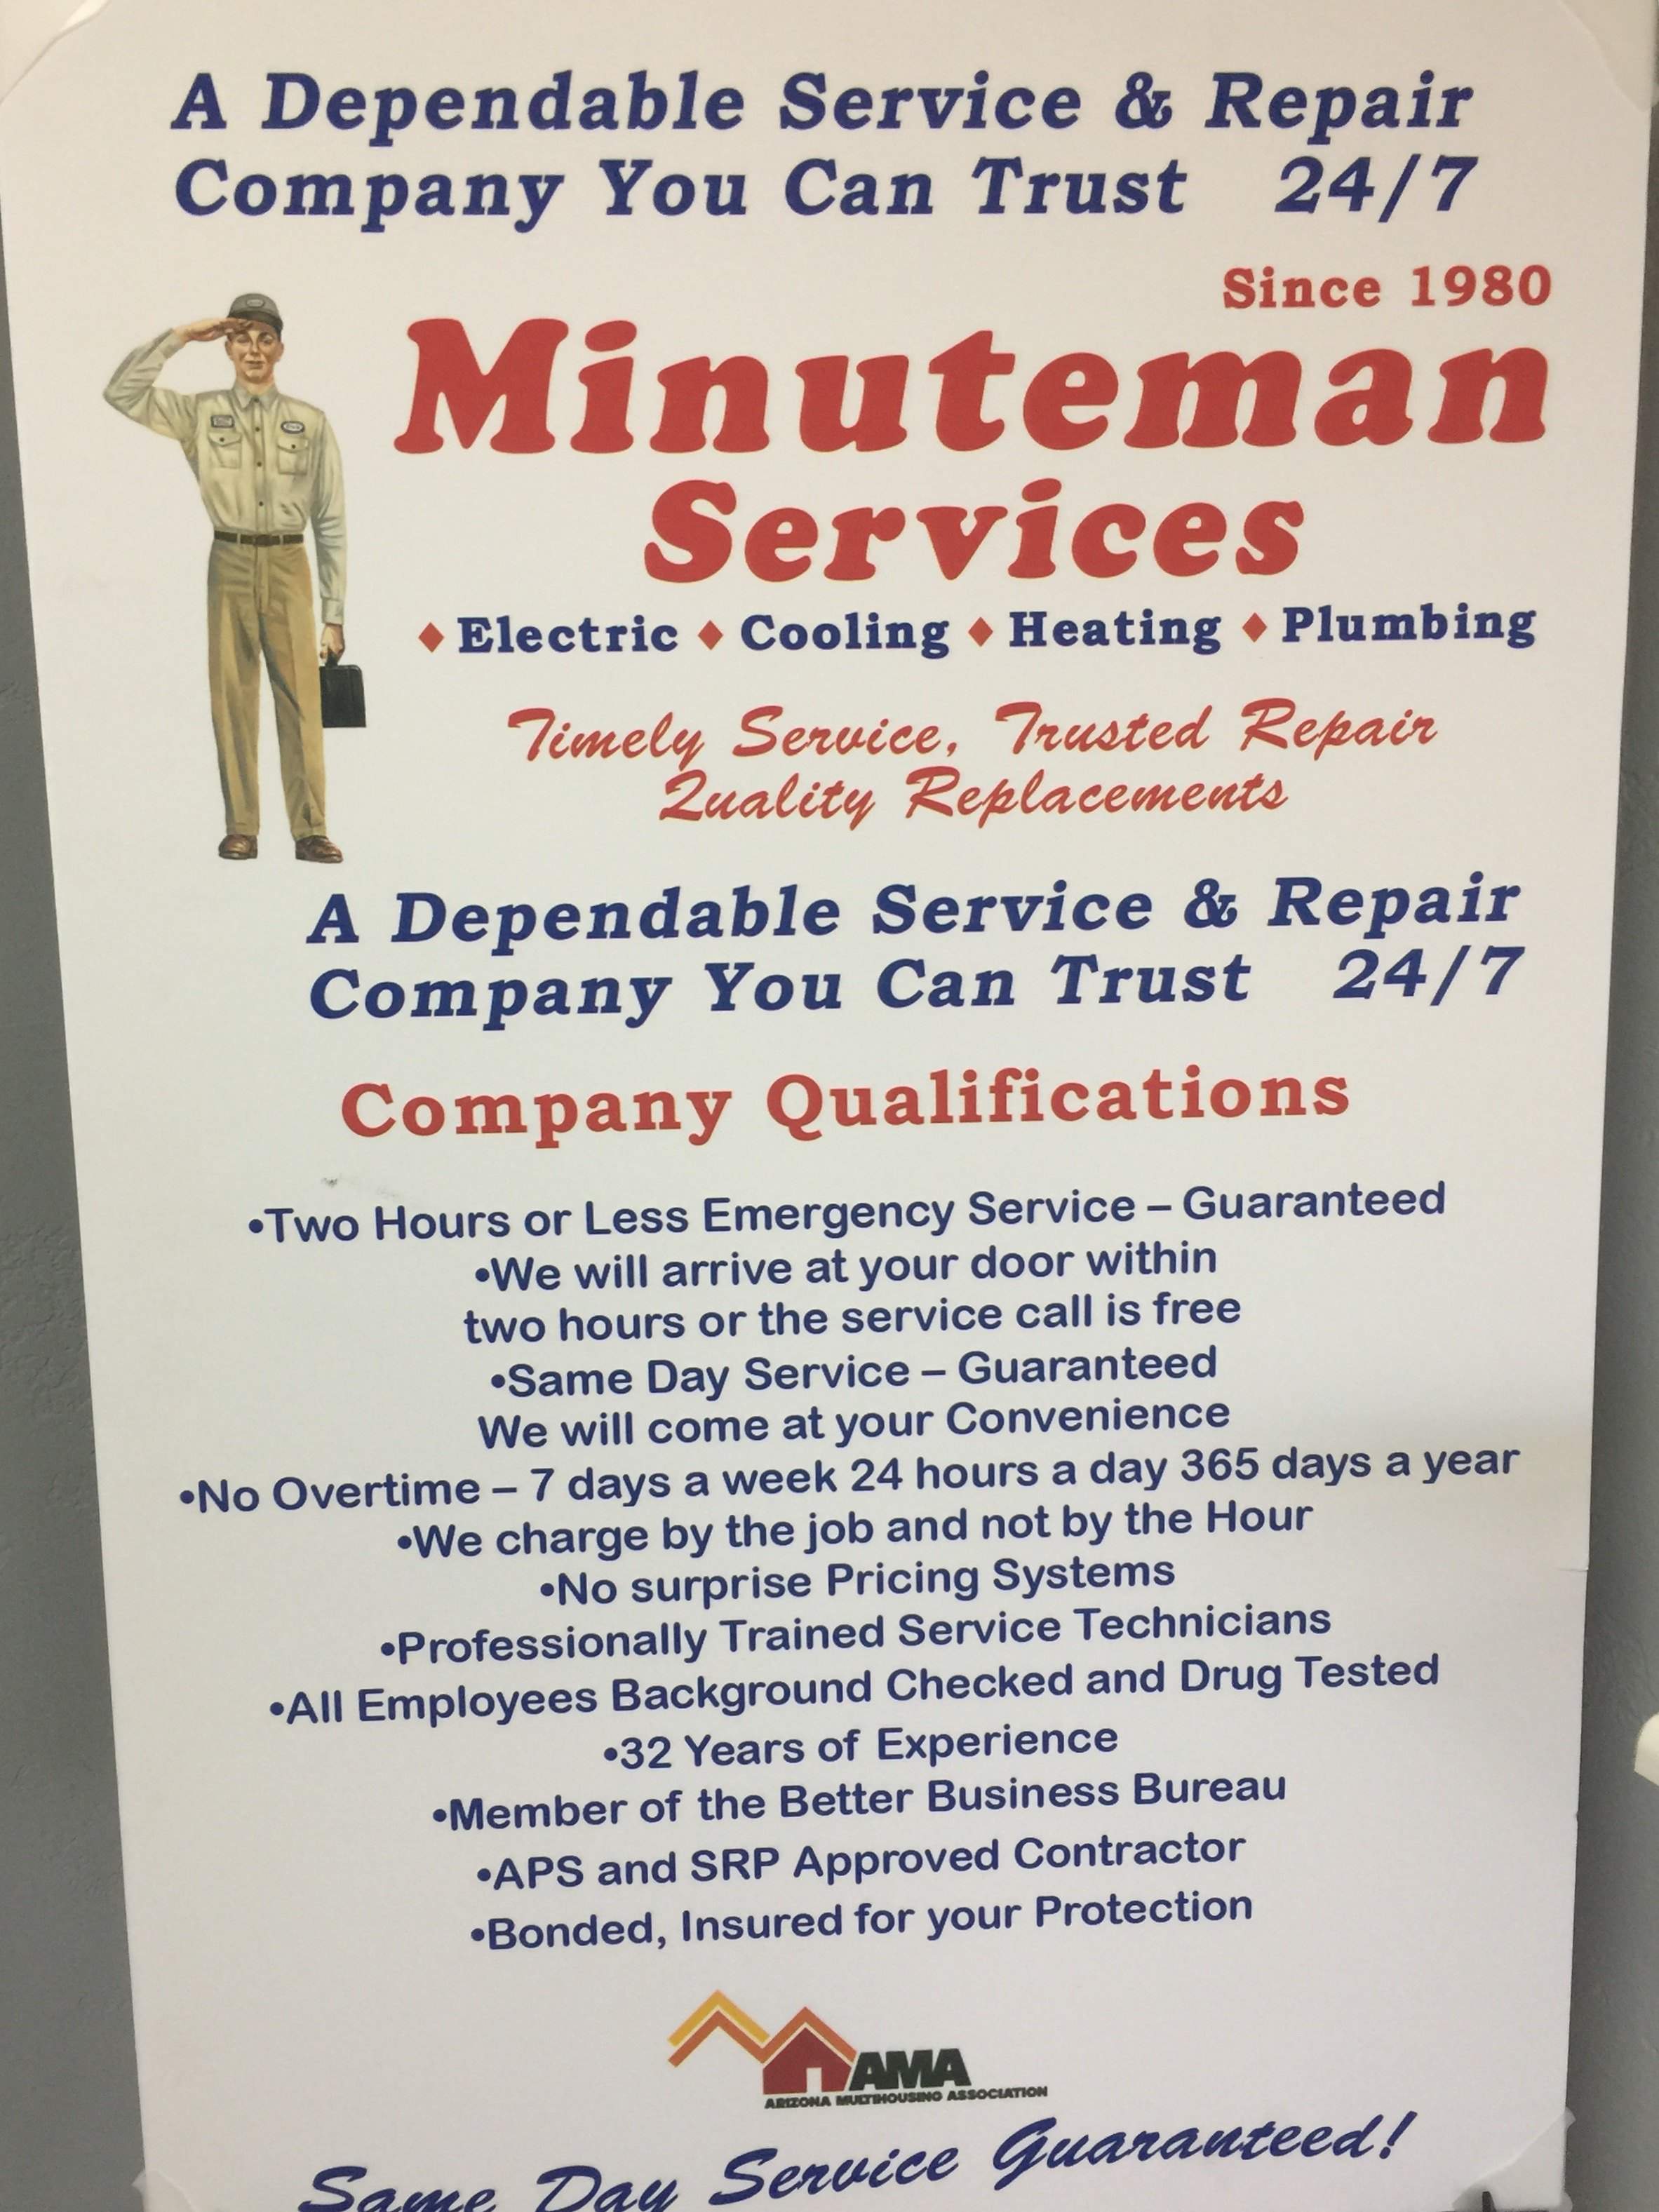 Minuteman Home Services Llc 2036 N Gilbert Rd Ste 2 155 Mesa Az Wiring Sub Panel For Generator Circuits Generators Lighting Main Electrical Smoke Detectors Surge Protection Code Compliance Upgrades